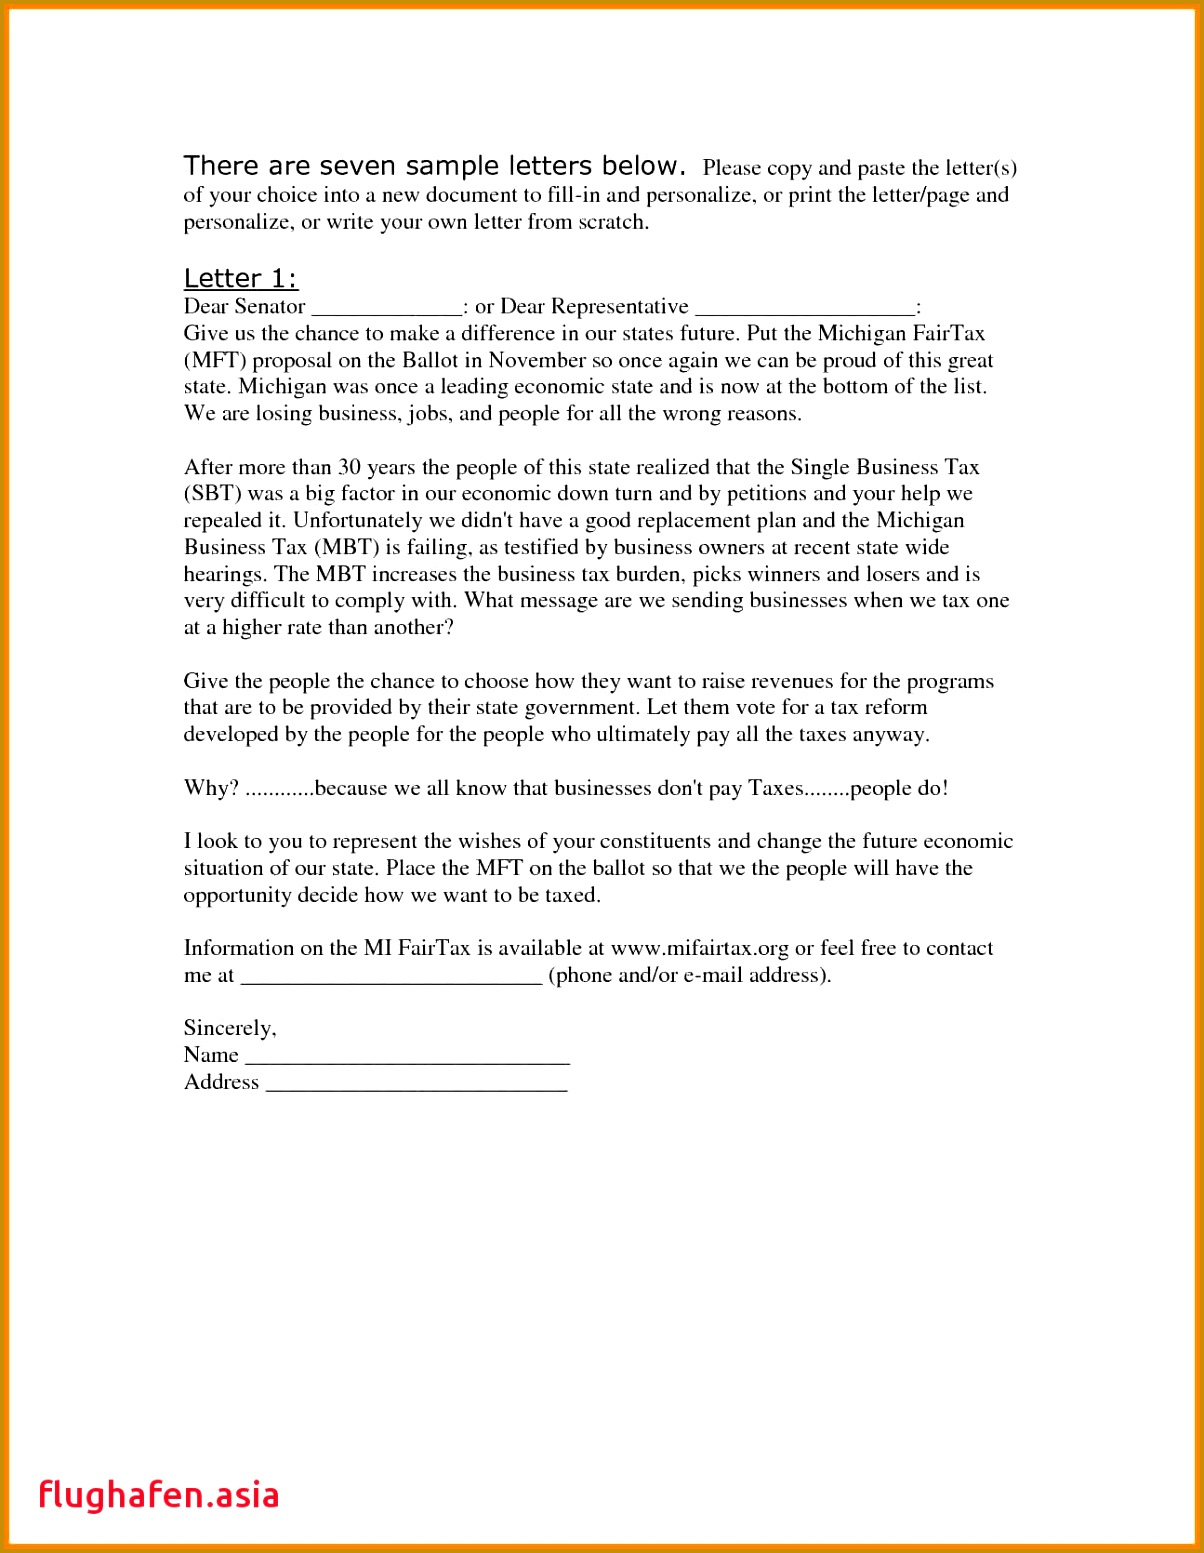 Email Proposal Template Eliolera Email Template For Business Proposal Lovely 12 Business Proposal Email Format 12041553